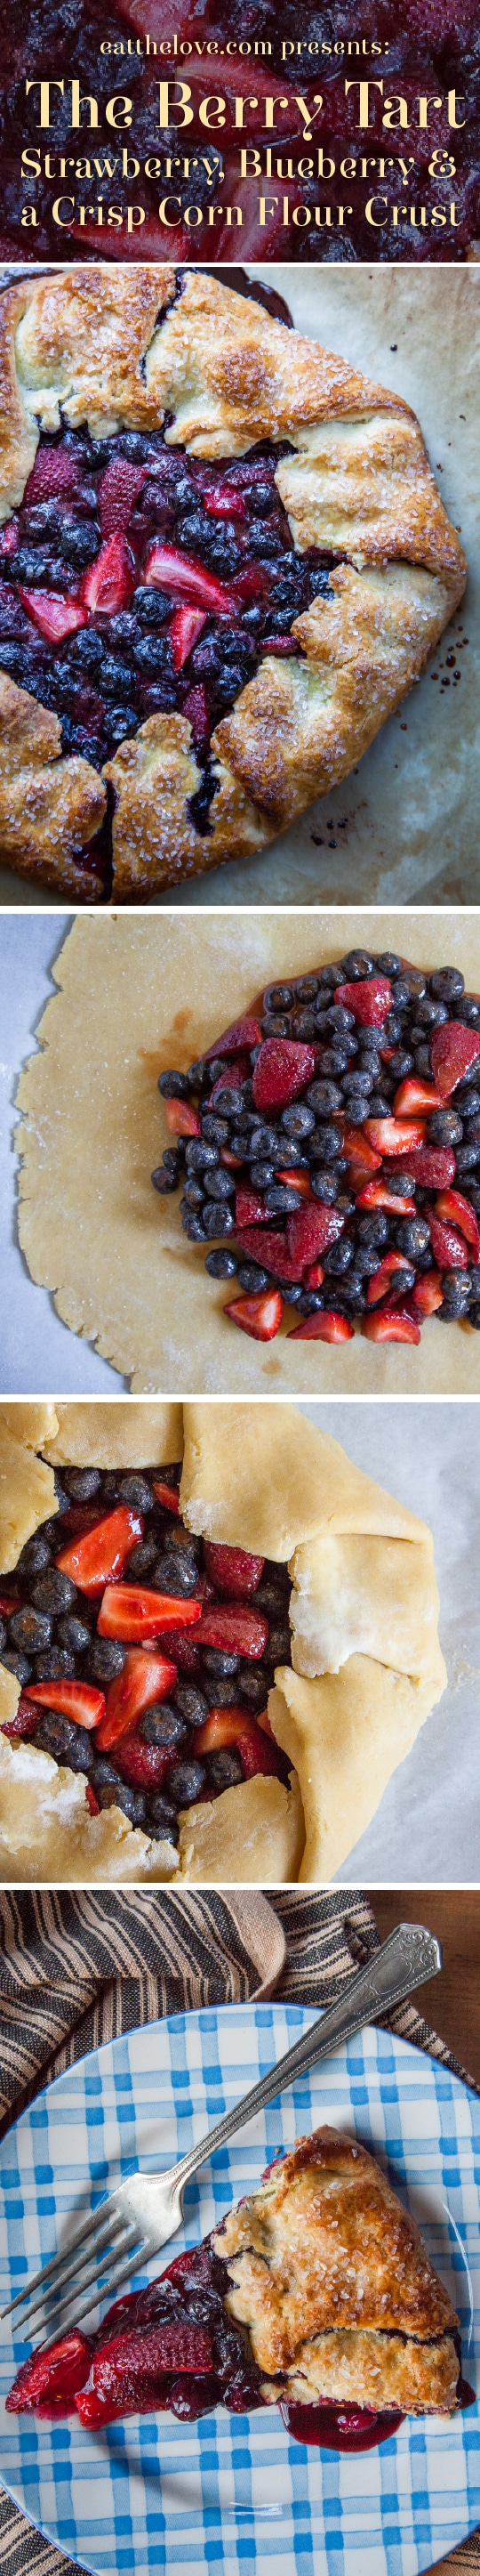 This easy berry tart with blueberries and strawberries has step-by-step photos and instructions on how to make it! Process photo and recipe by Irvin Lin of Eat the Love